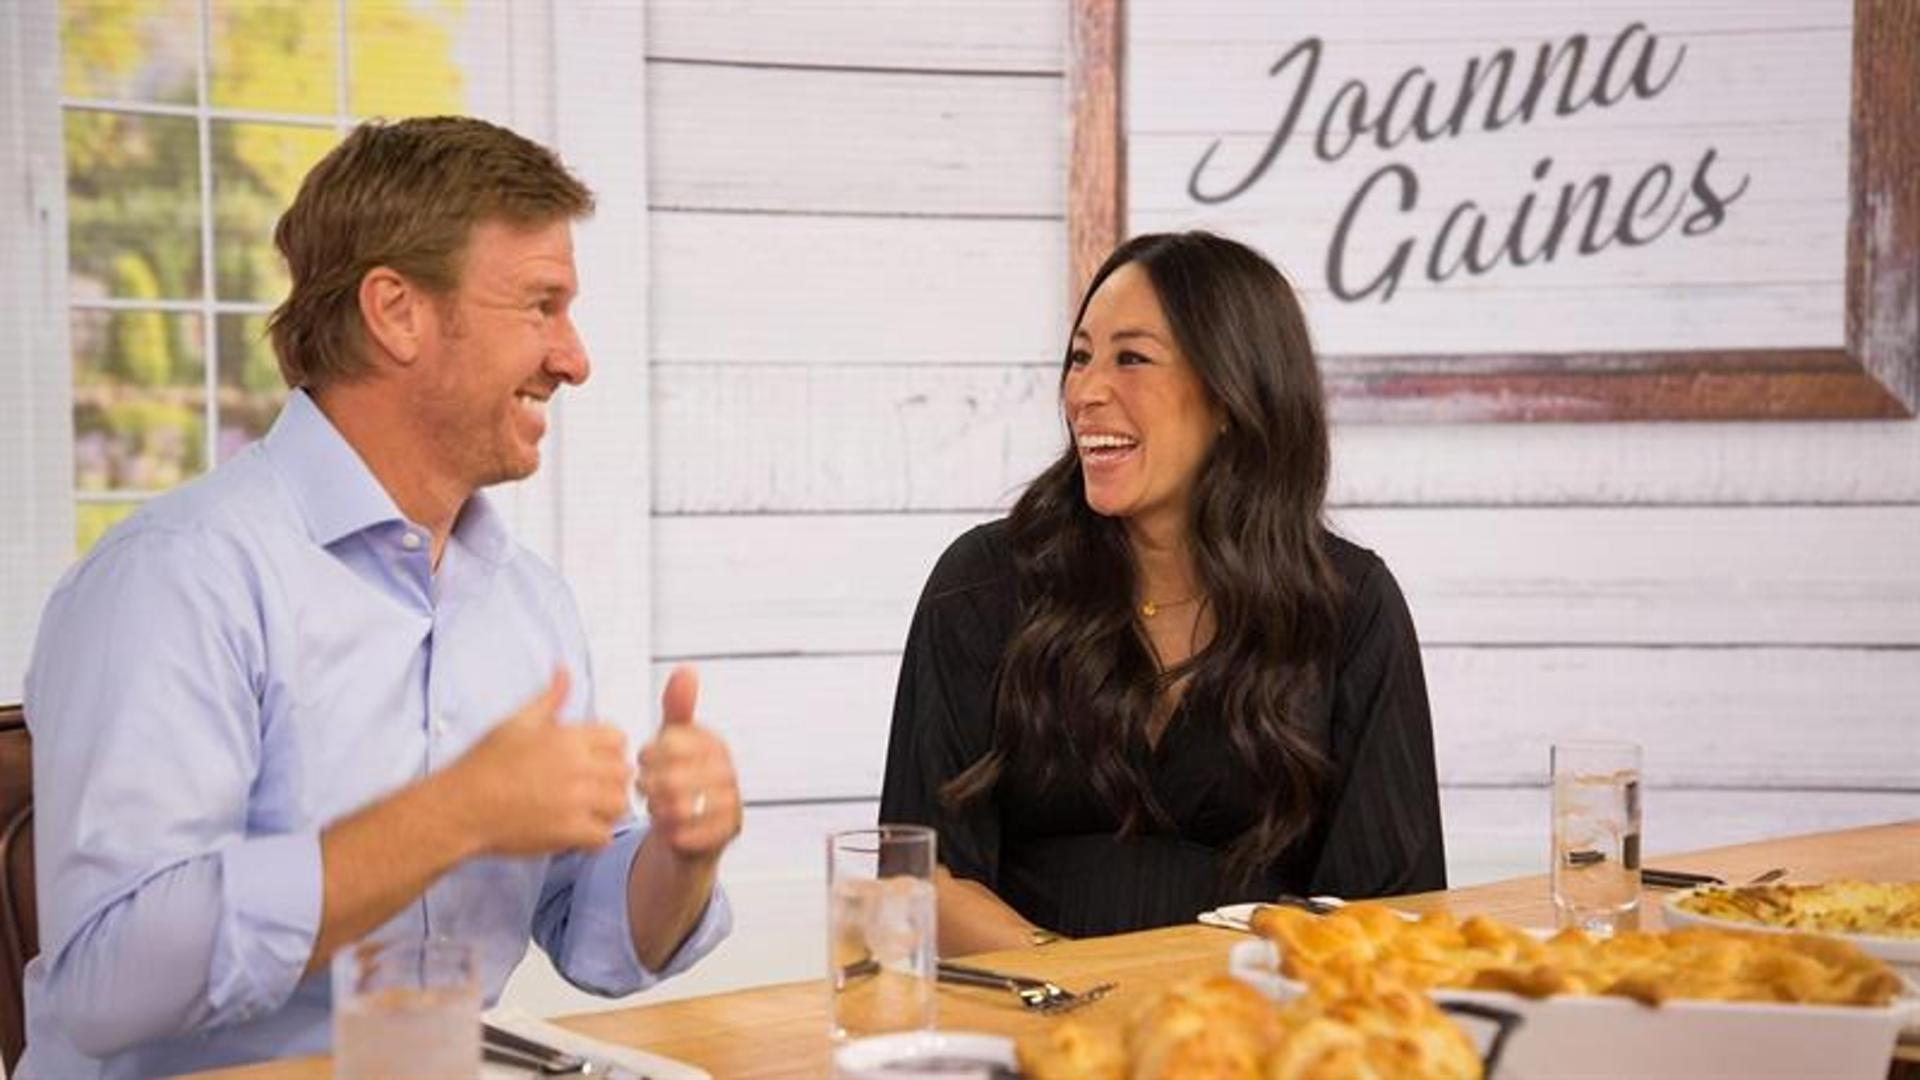 Joanna Gaines' Biscuit Recipe Is The Star Of Her 'Magnolia Table' Cookbook | HuffPost Life